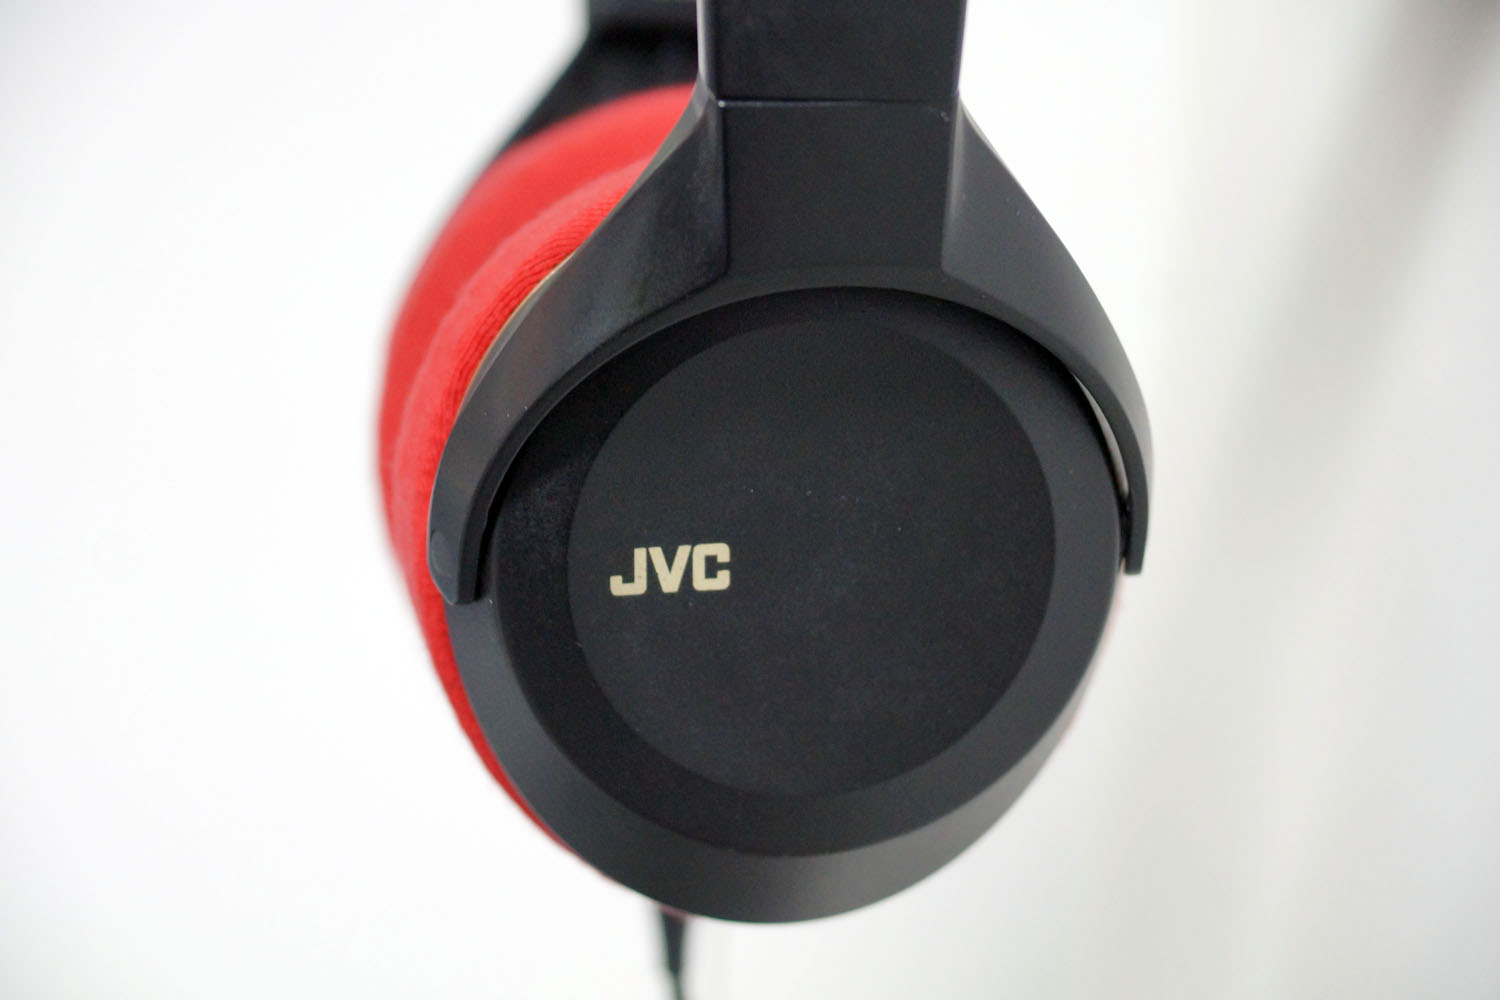 JVC SIGNA 01 ear pads compatible with mimimamo